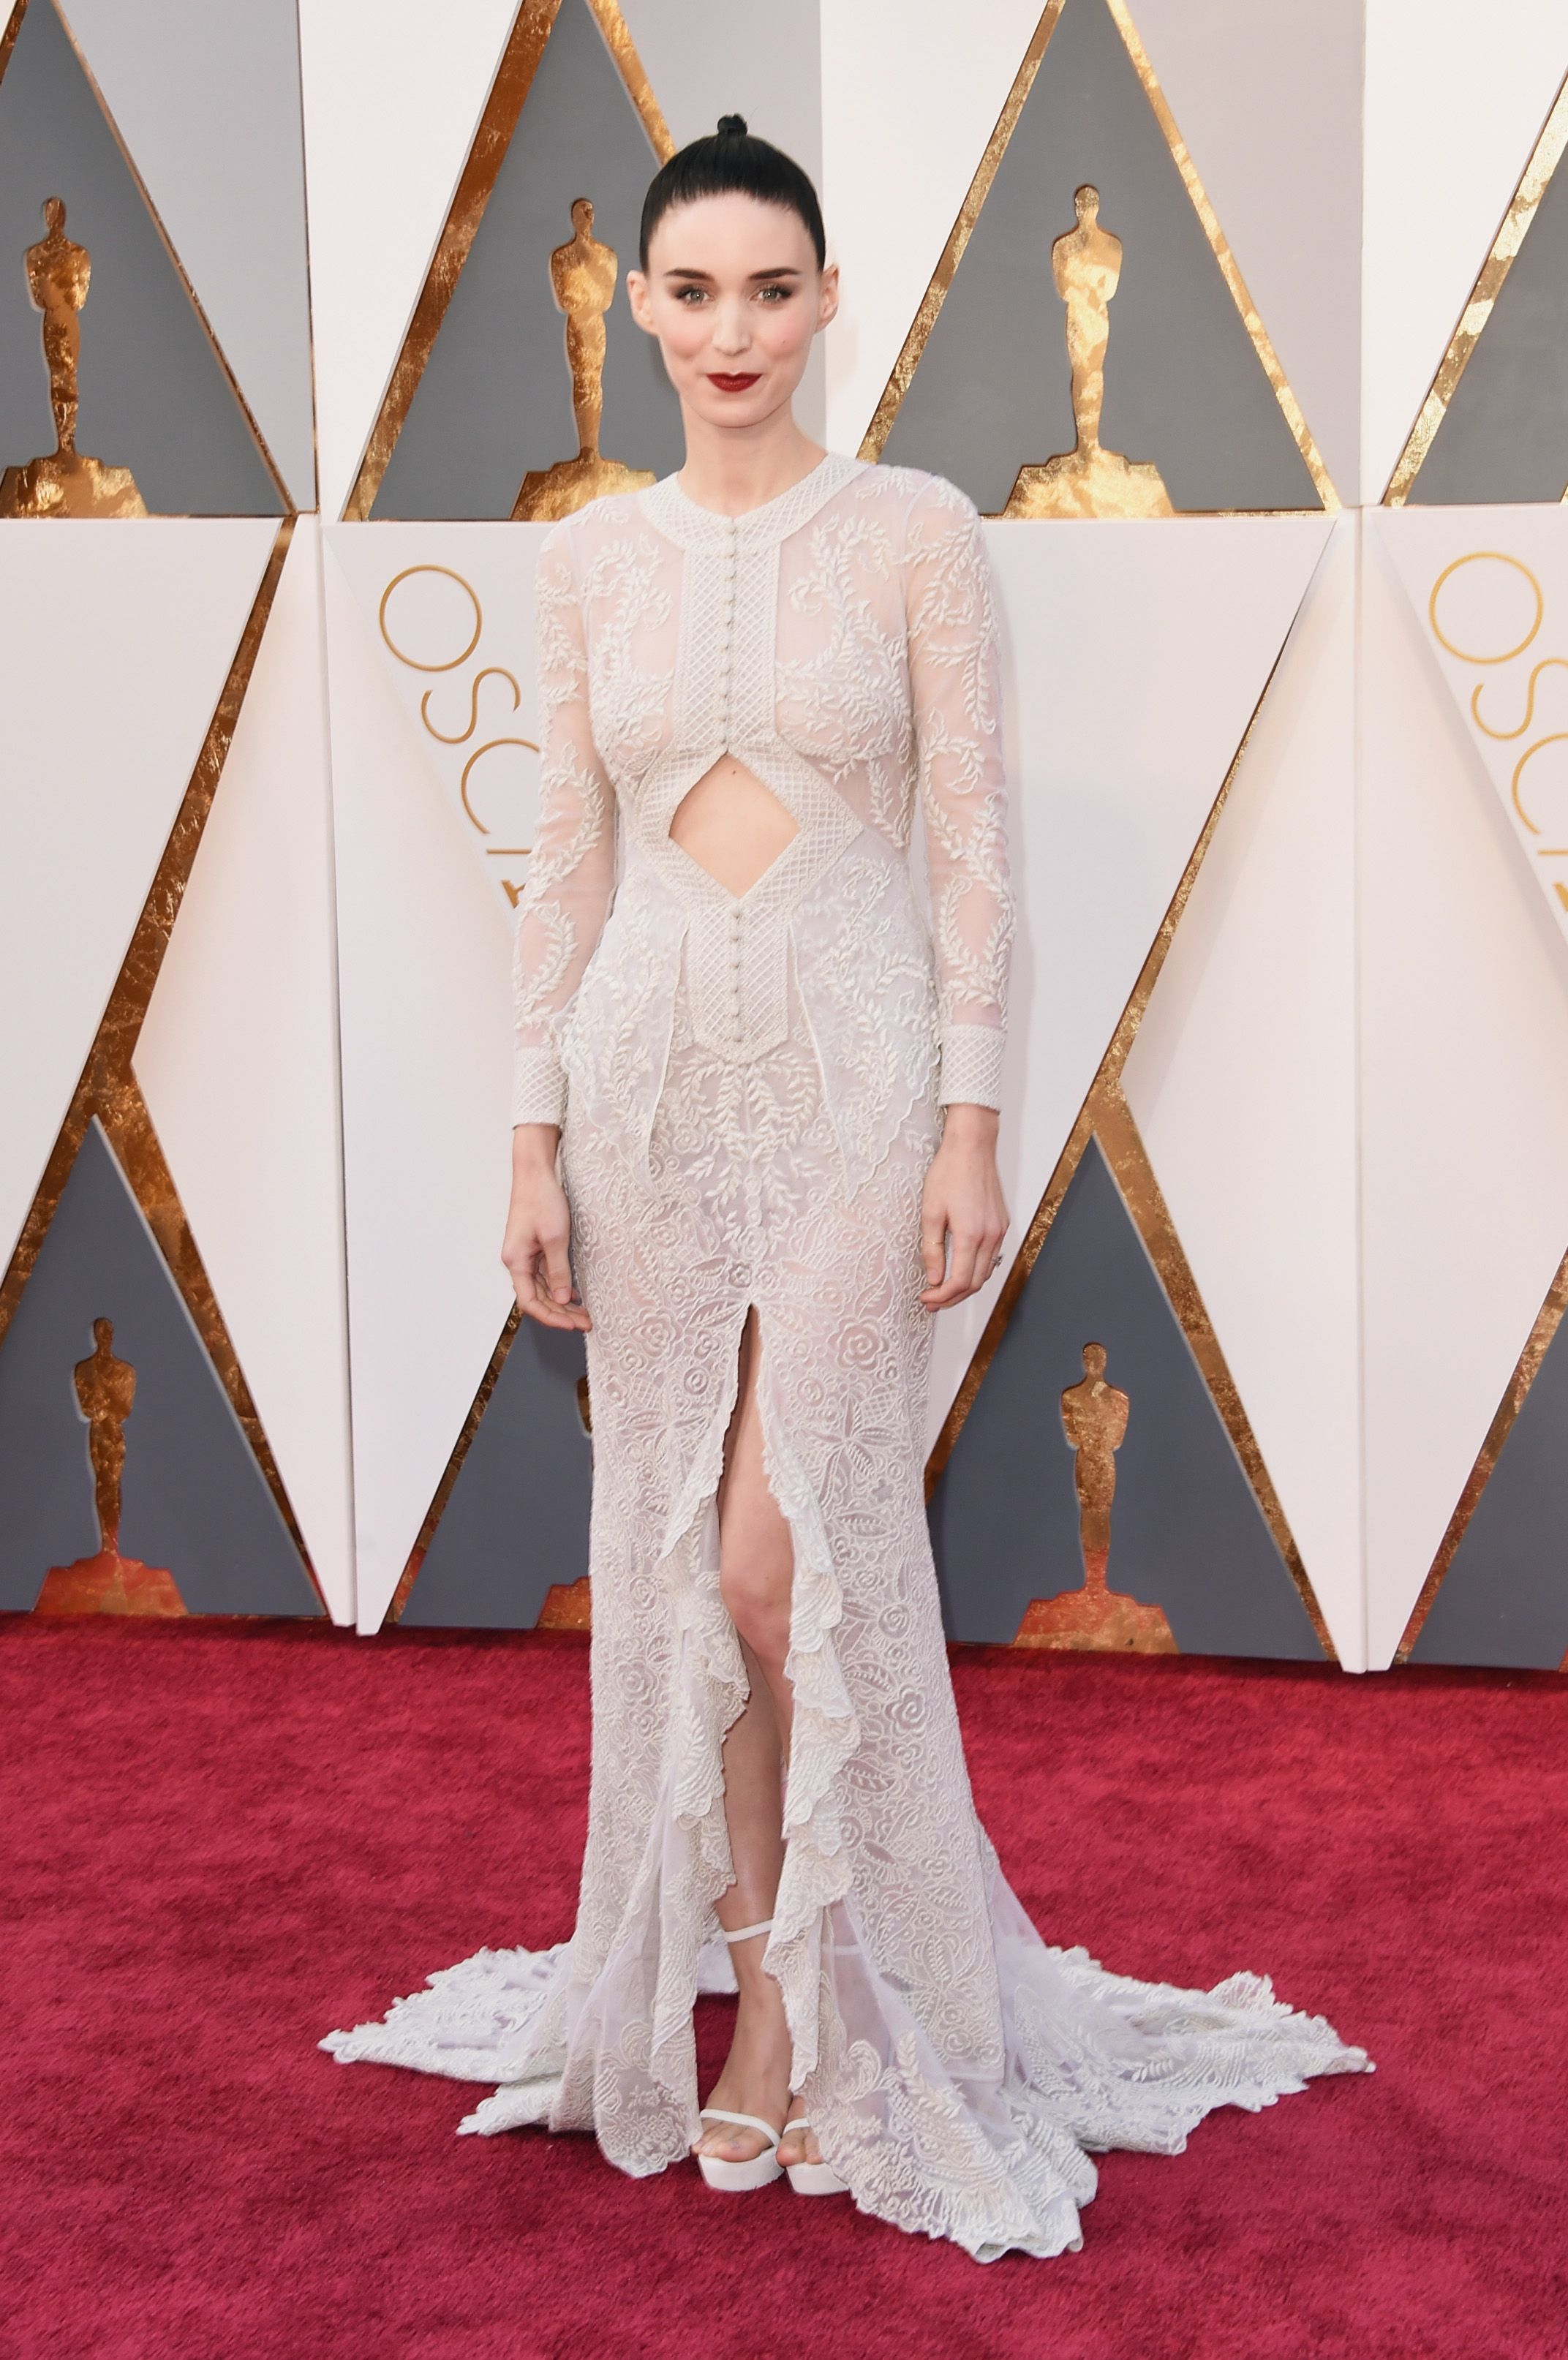 Rooney Mara, 2016 Rooney Mara in lace Givenchy, a.k.a. the dress of our dreams. Her slicked back hair and staple red lip adds to the elegance of the gorgeous sheer number.